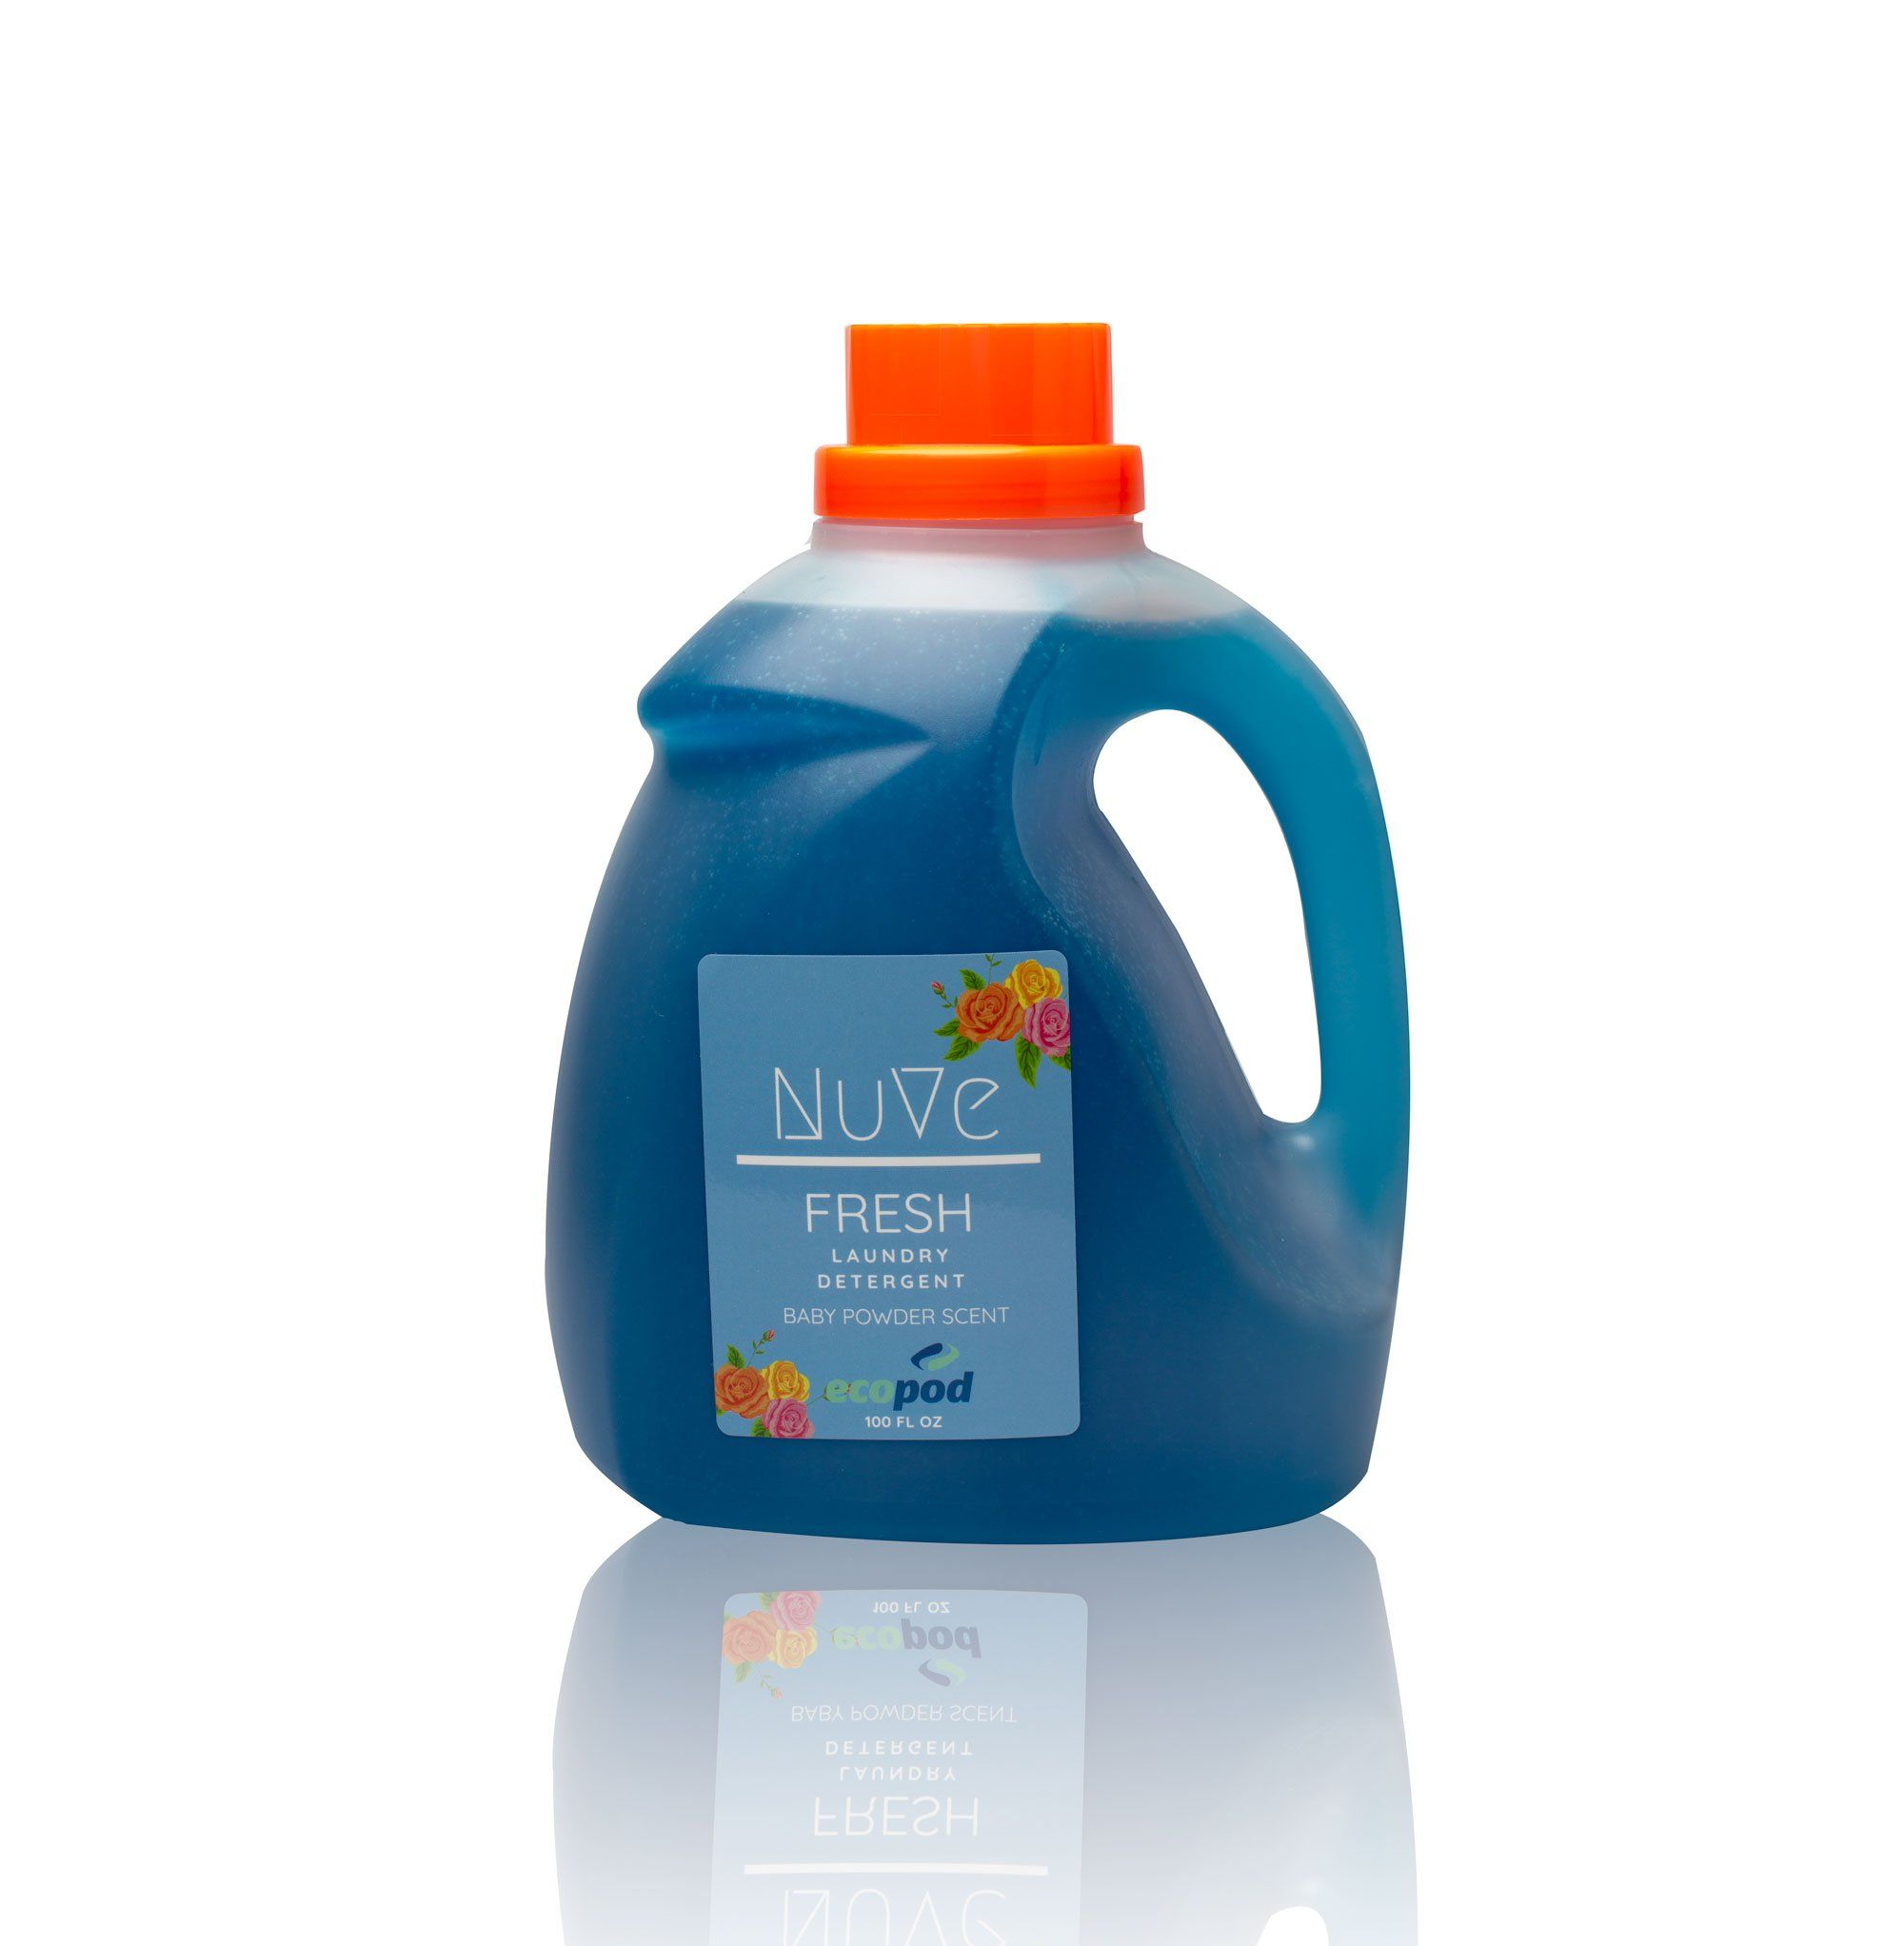 Laundry Detergents - Scented Laundry Detergent